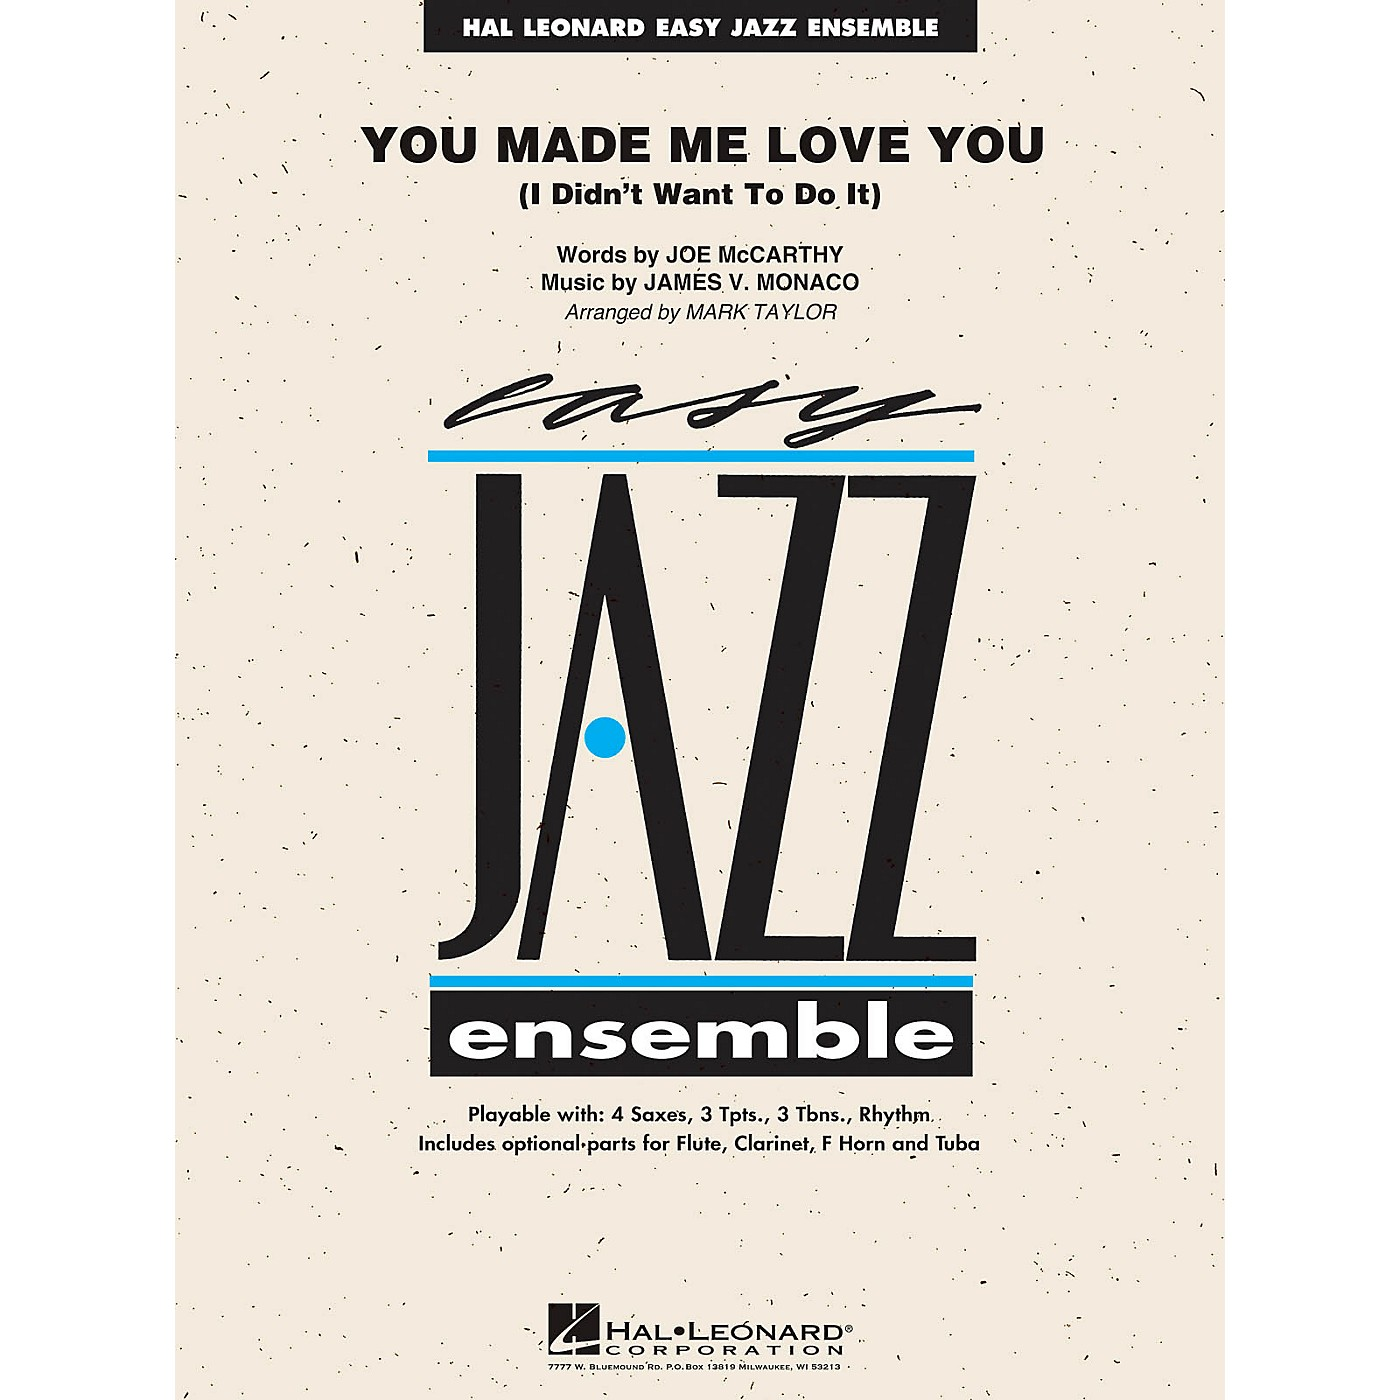 Hal Leonard You Made Me Love You (I Didn't Want to Do It) Jazz Band Level 2 by Al Jolson Arranged by Mark Taylor thumbnail